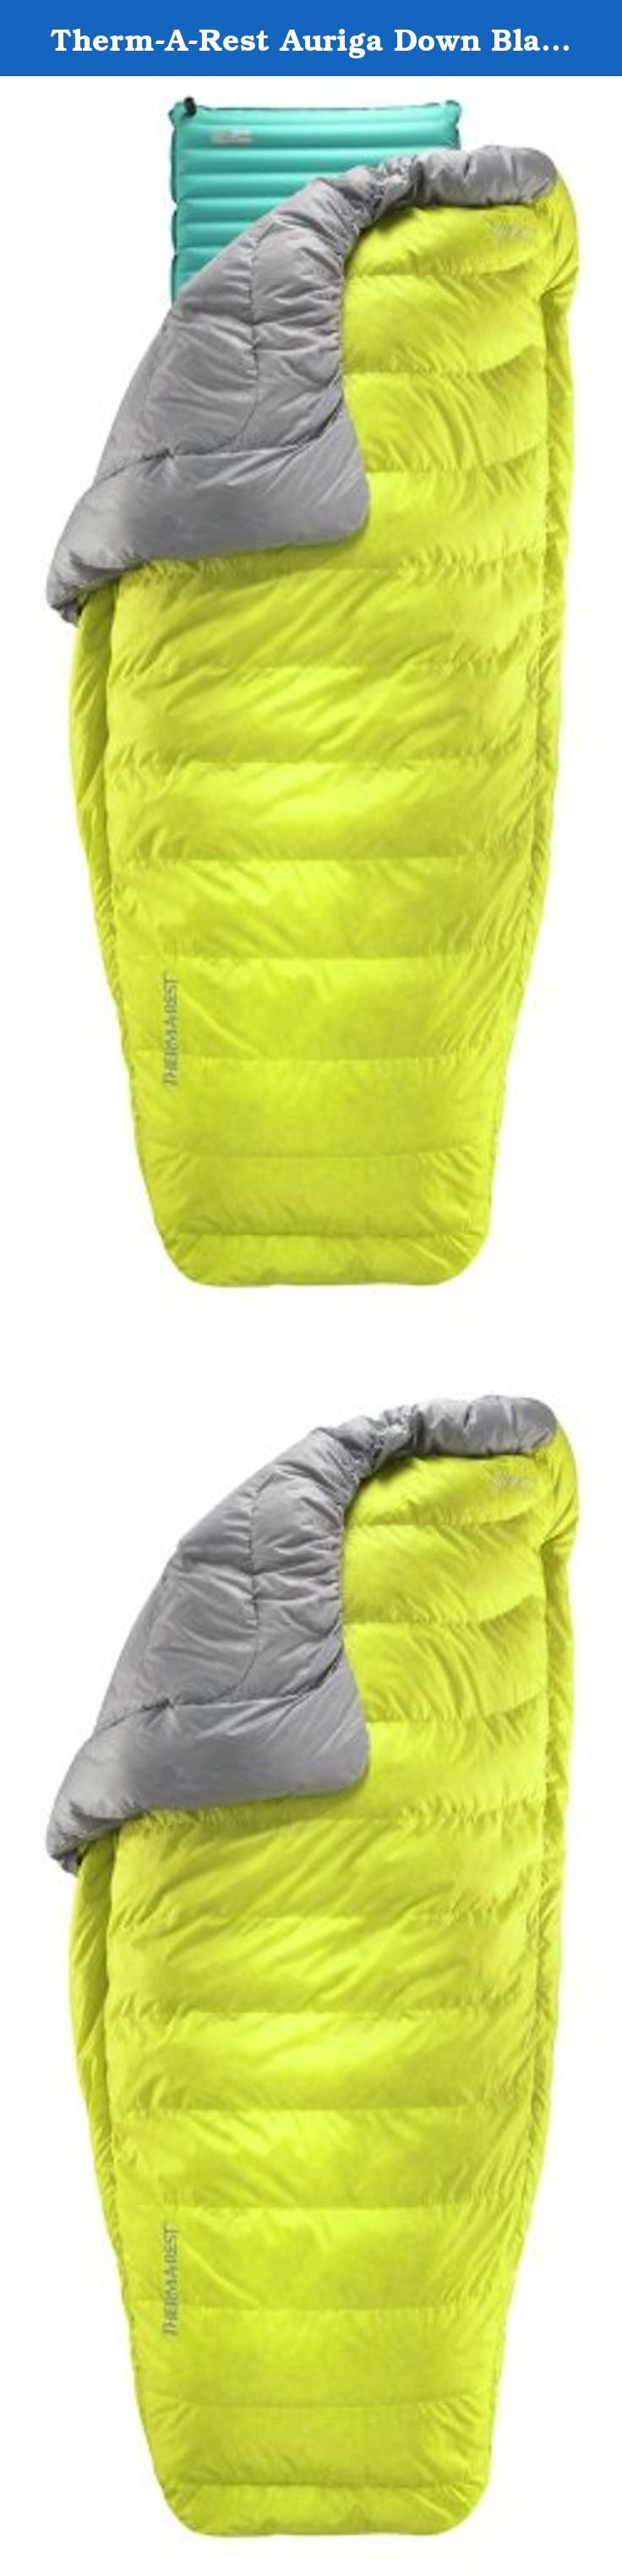 Therm-A-Rest Auriga Down Blanket, Sulfur, Regular. New for 2014: The Therm-a-Rest Auriga 35 Degree (2C) Down Blanket is ideal for ultralight backcountry travel in mild weather and also makes a great option for hut-to-hut traverses in any season. Delivering excellent temperature regulation and freedom of movement at just over a pound, the Auriga offers unprecedented comfort in minimalist situations.